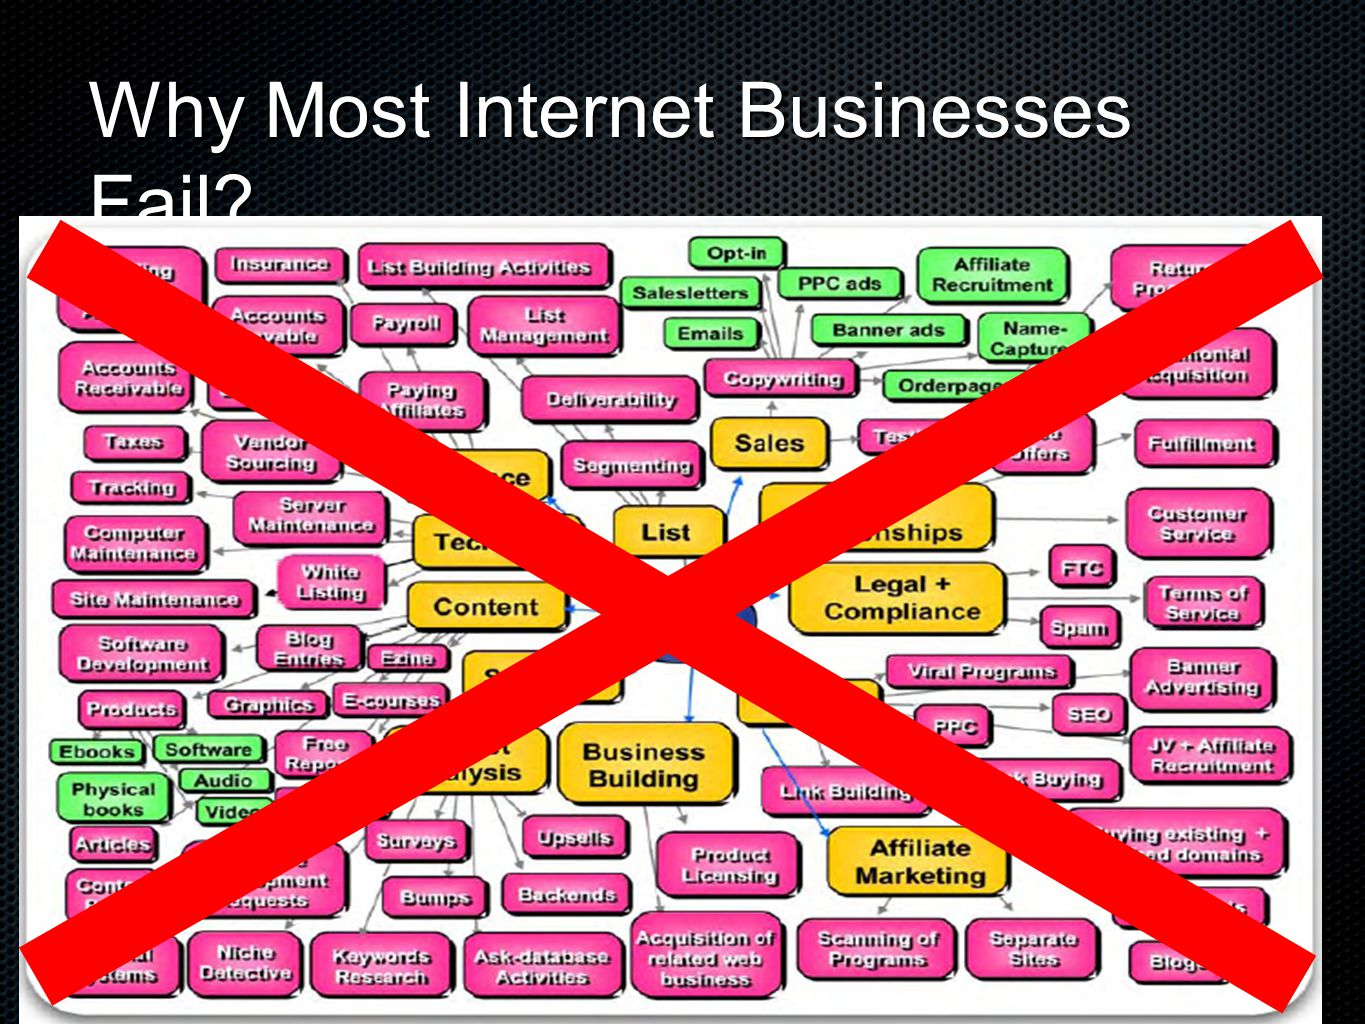 Why Most Internet Businesses Fail